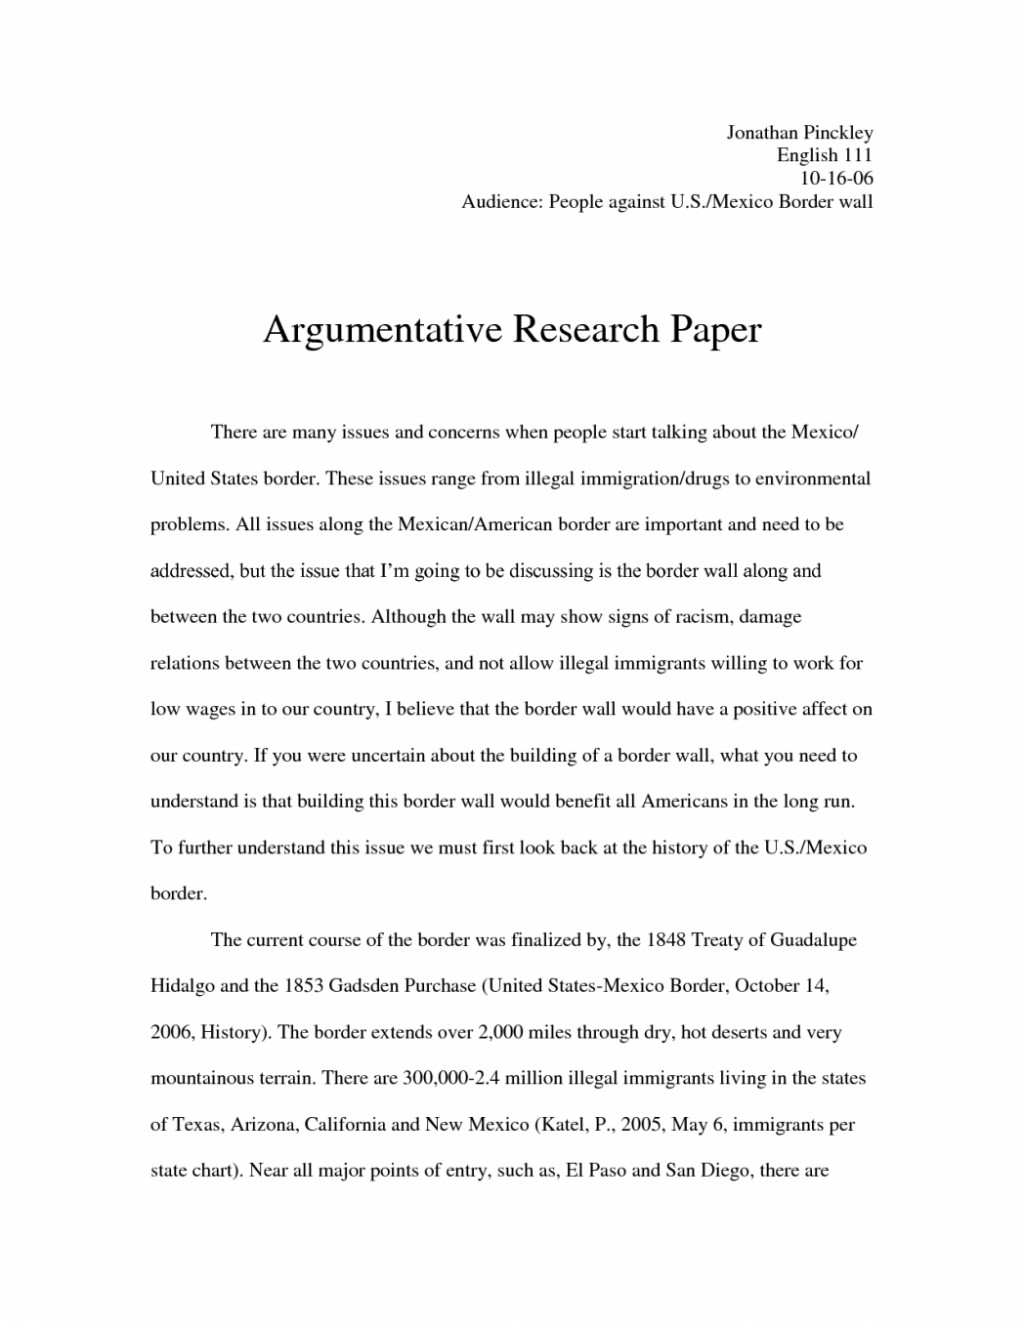 003 Argumentative Essay On Illegal Immigration Argument Research Persuasive Why Is Good Pgune Reform In America Topics Control Pro Thesis Rights 1048x1356 Wonderful Laws Large